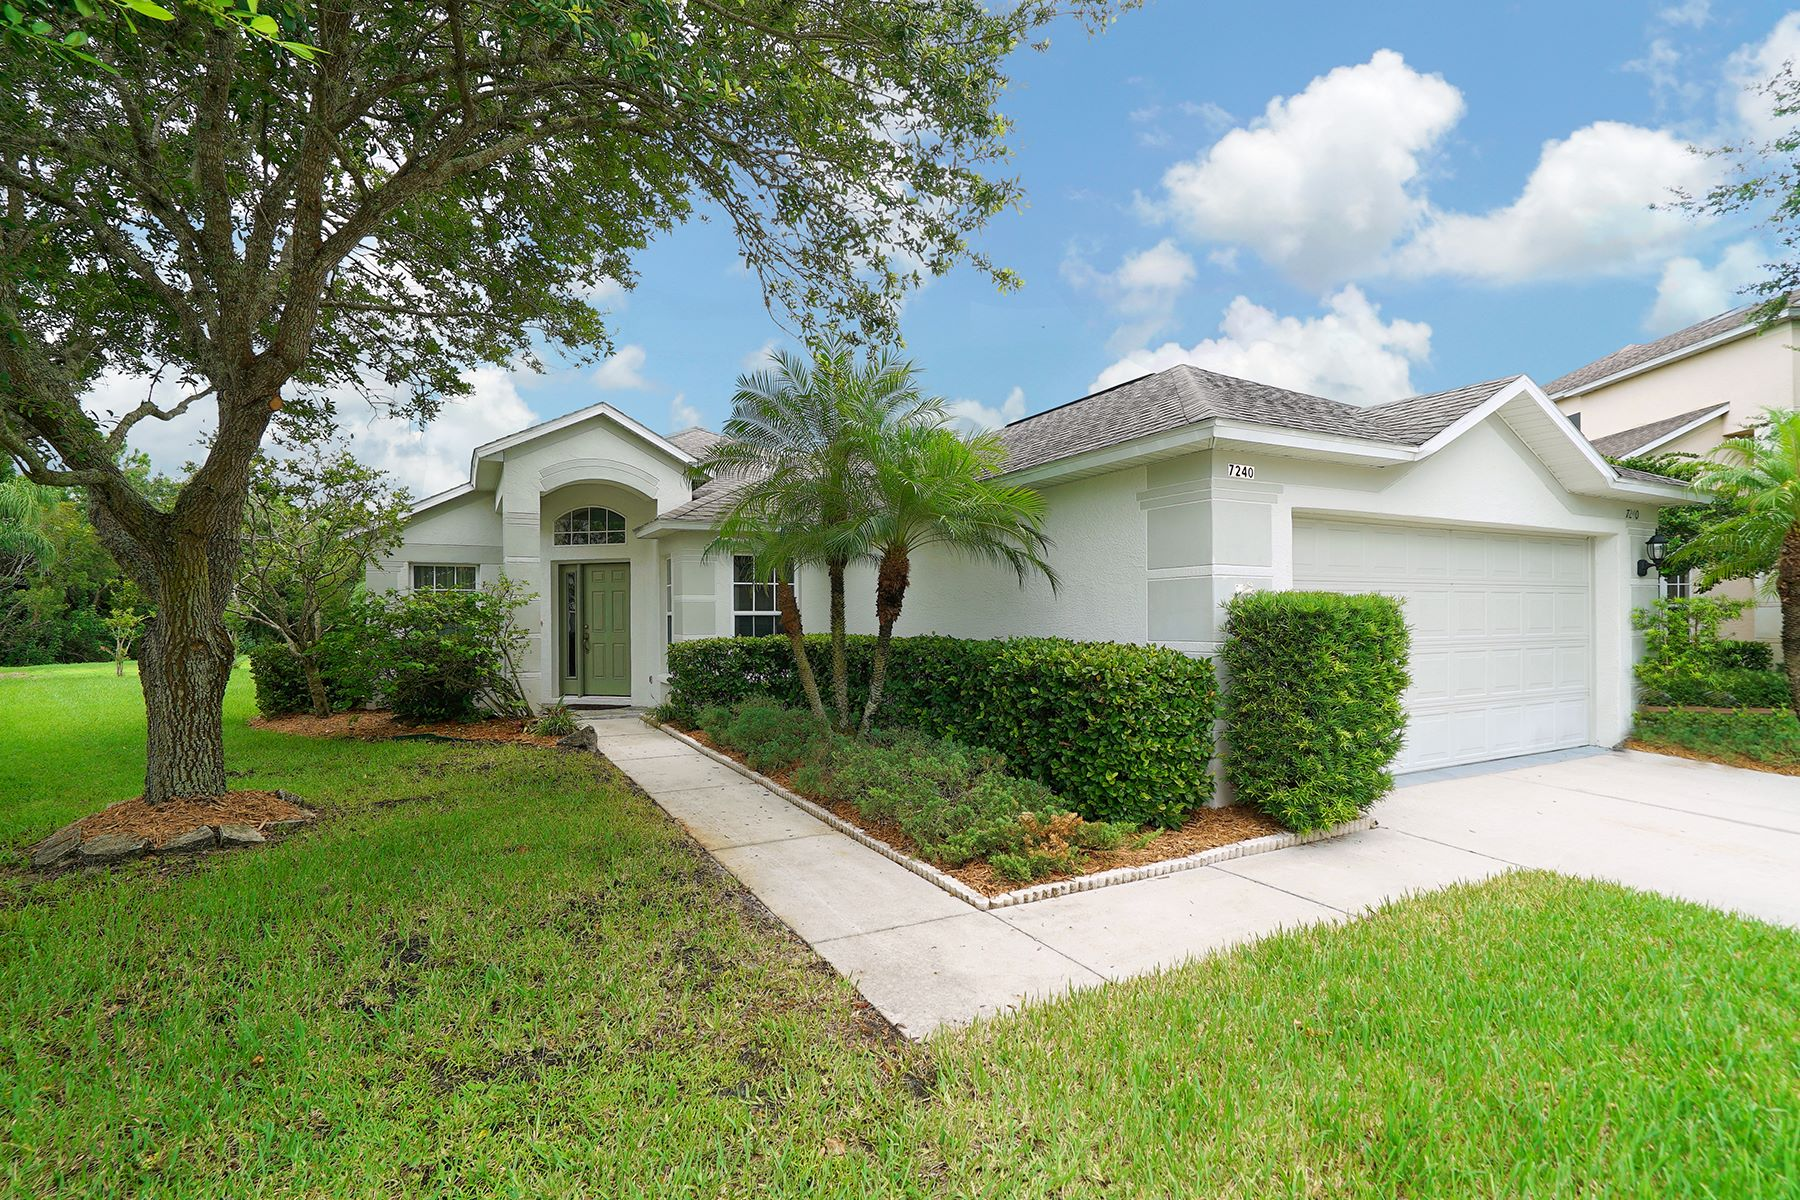 Single Family Home for Sale at RIVERWALK VILLAGE 7240 Spoonflower Ct, Lakewood Ranch, Florida 34202 United States